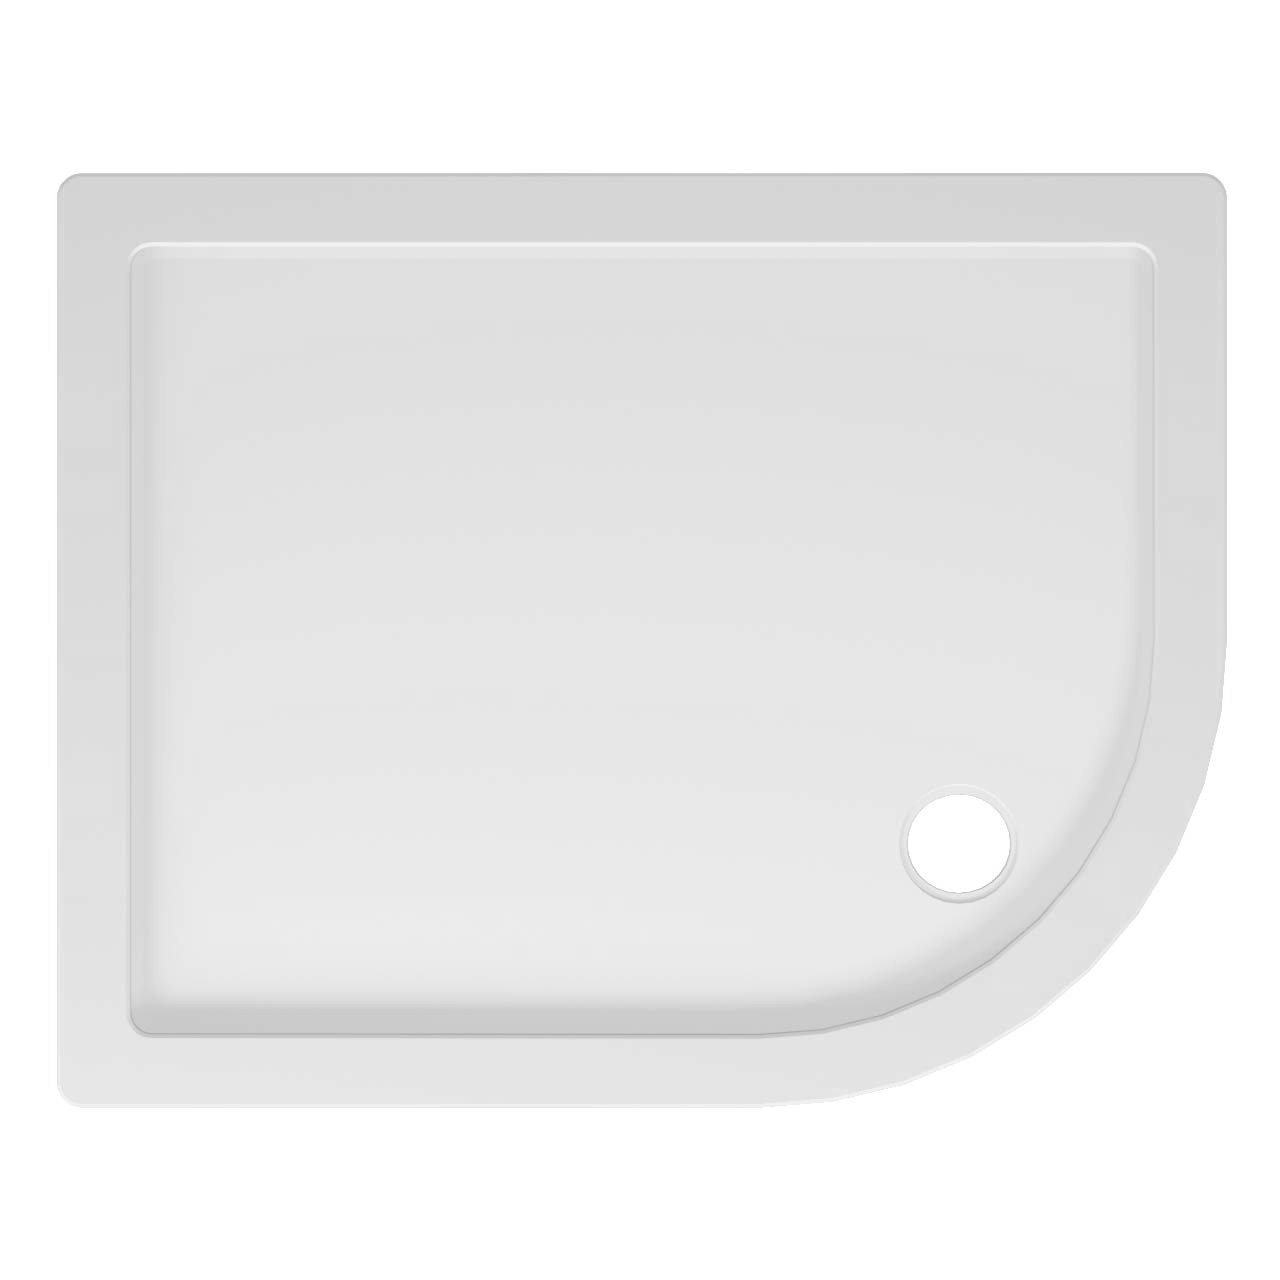 40mm Pearlstone 1000 x 800 Right Hand Offset Quadrant Shower Tray